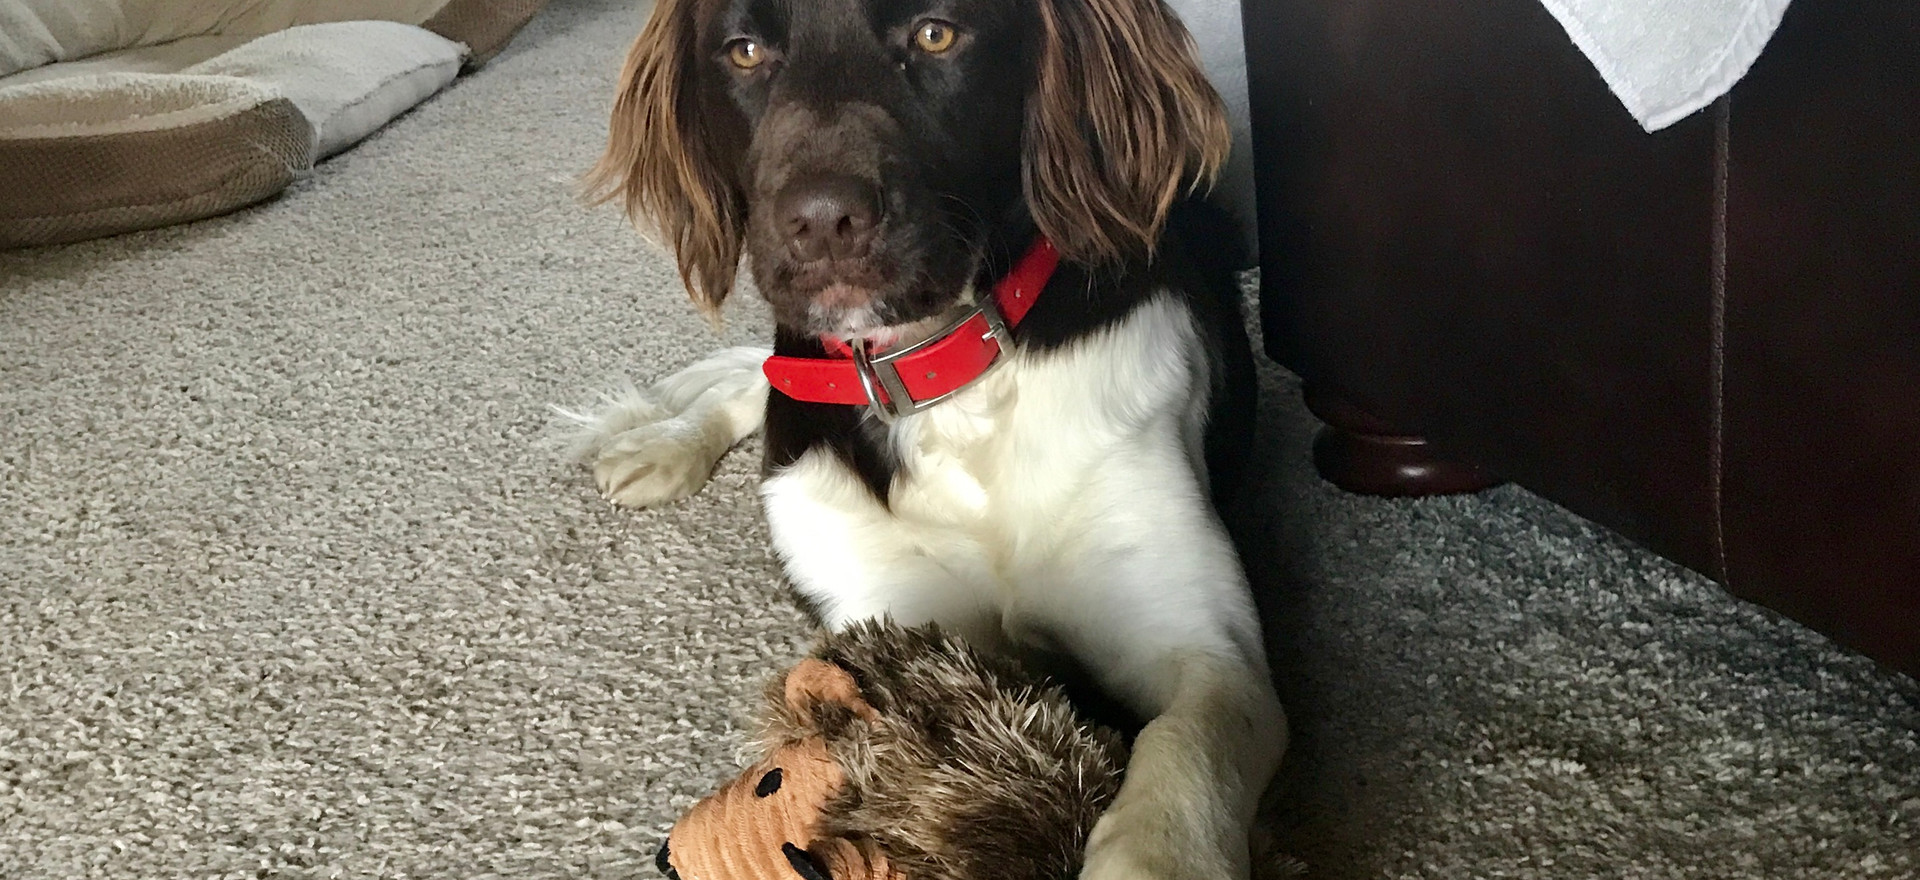 What a posser with her hedgehog.